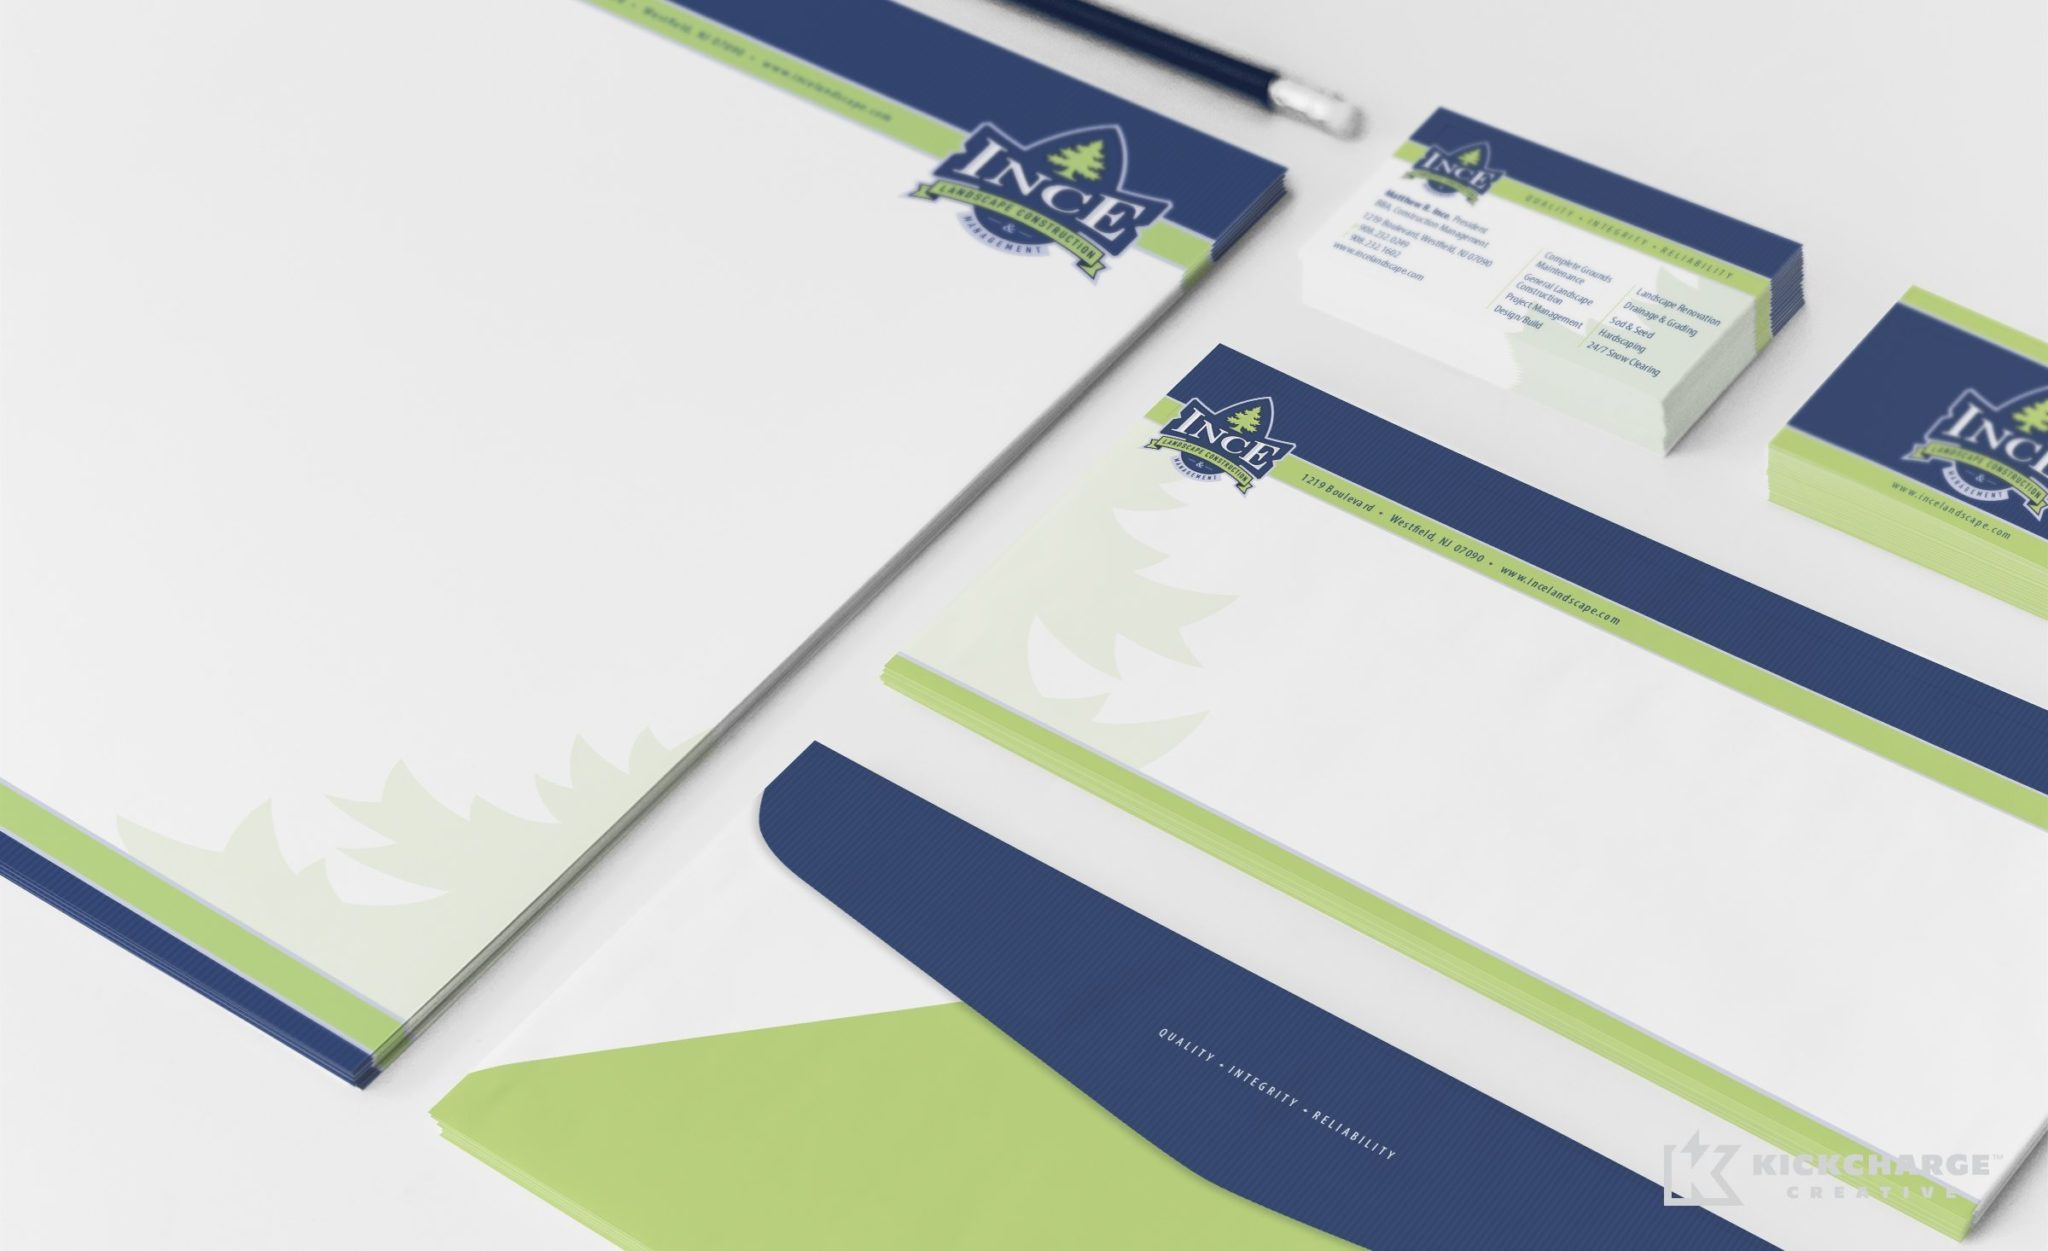 Stationery design for a landscape company in Scotch Plains, NJ.